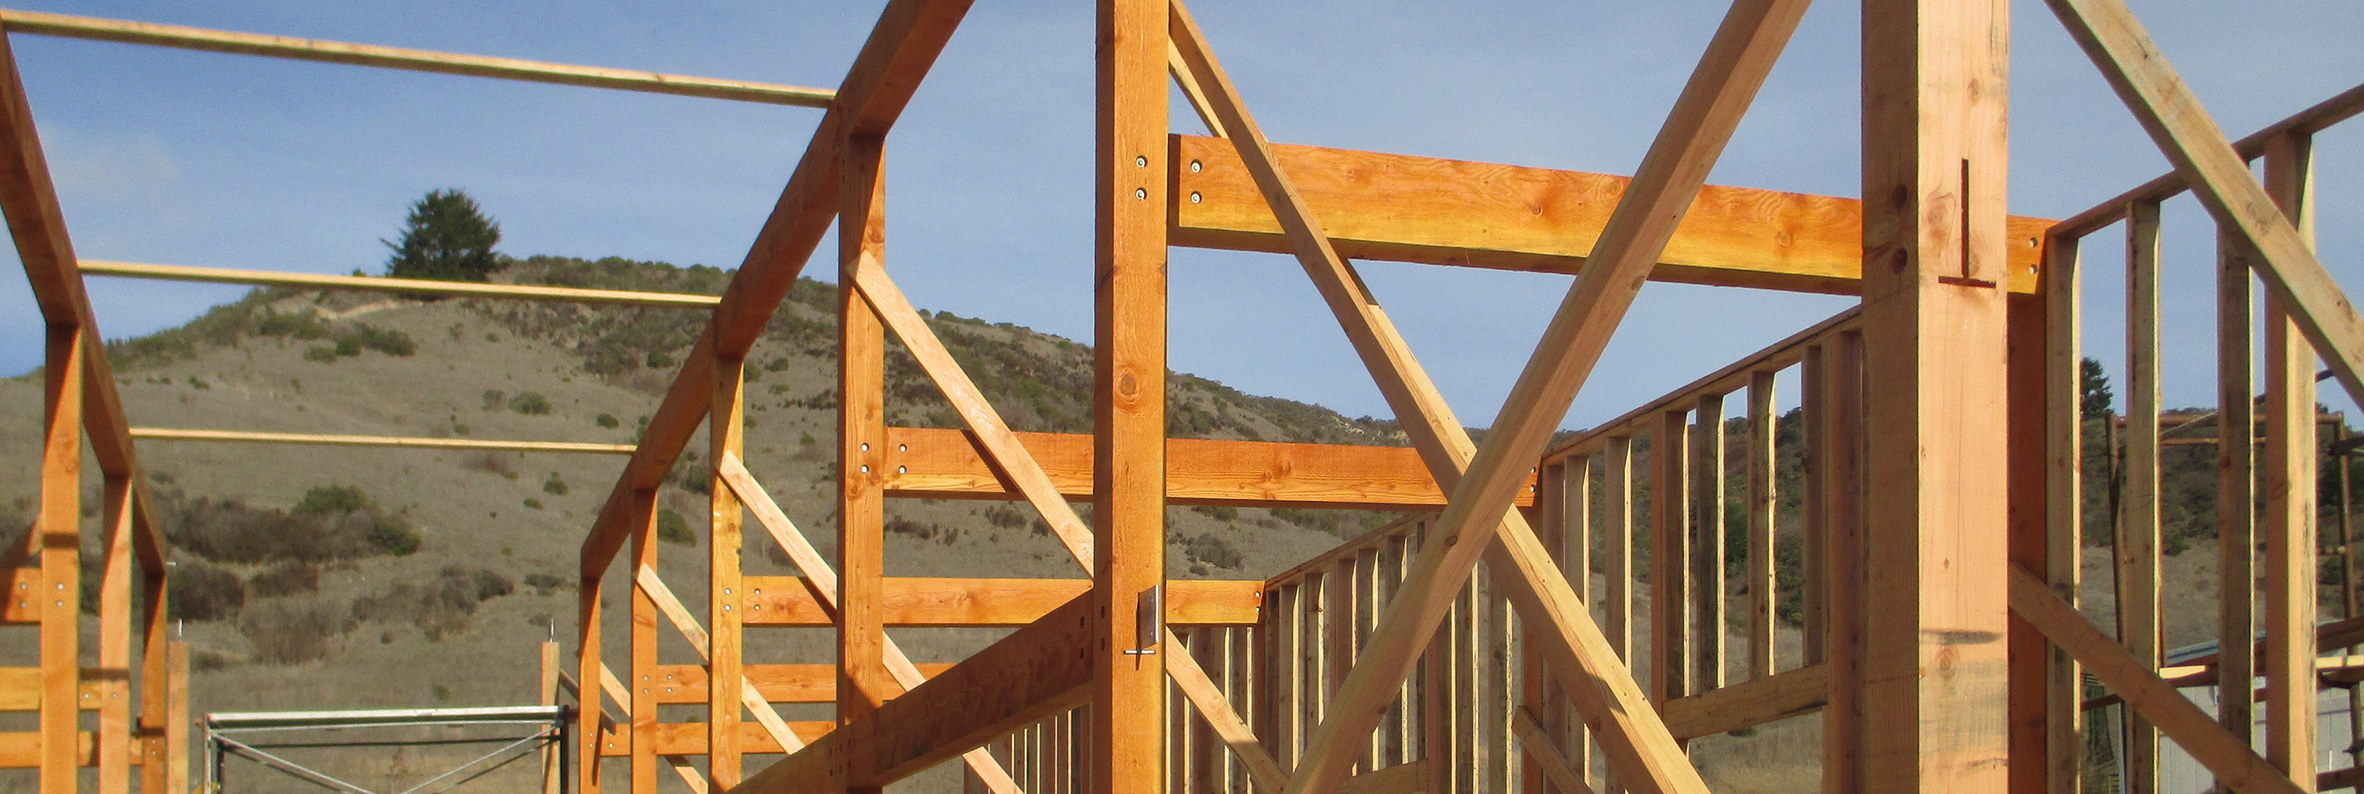 Pomponio Barn wood structure detail connections